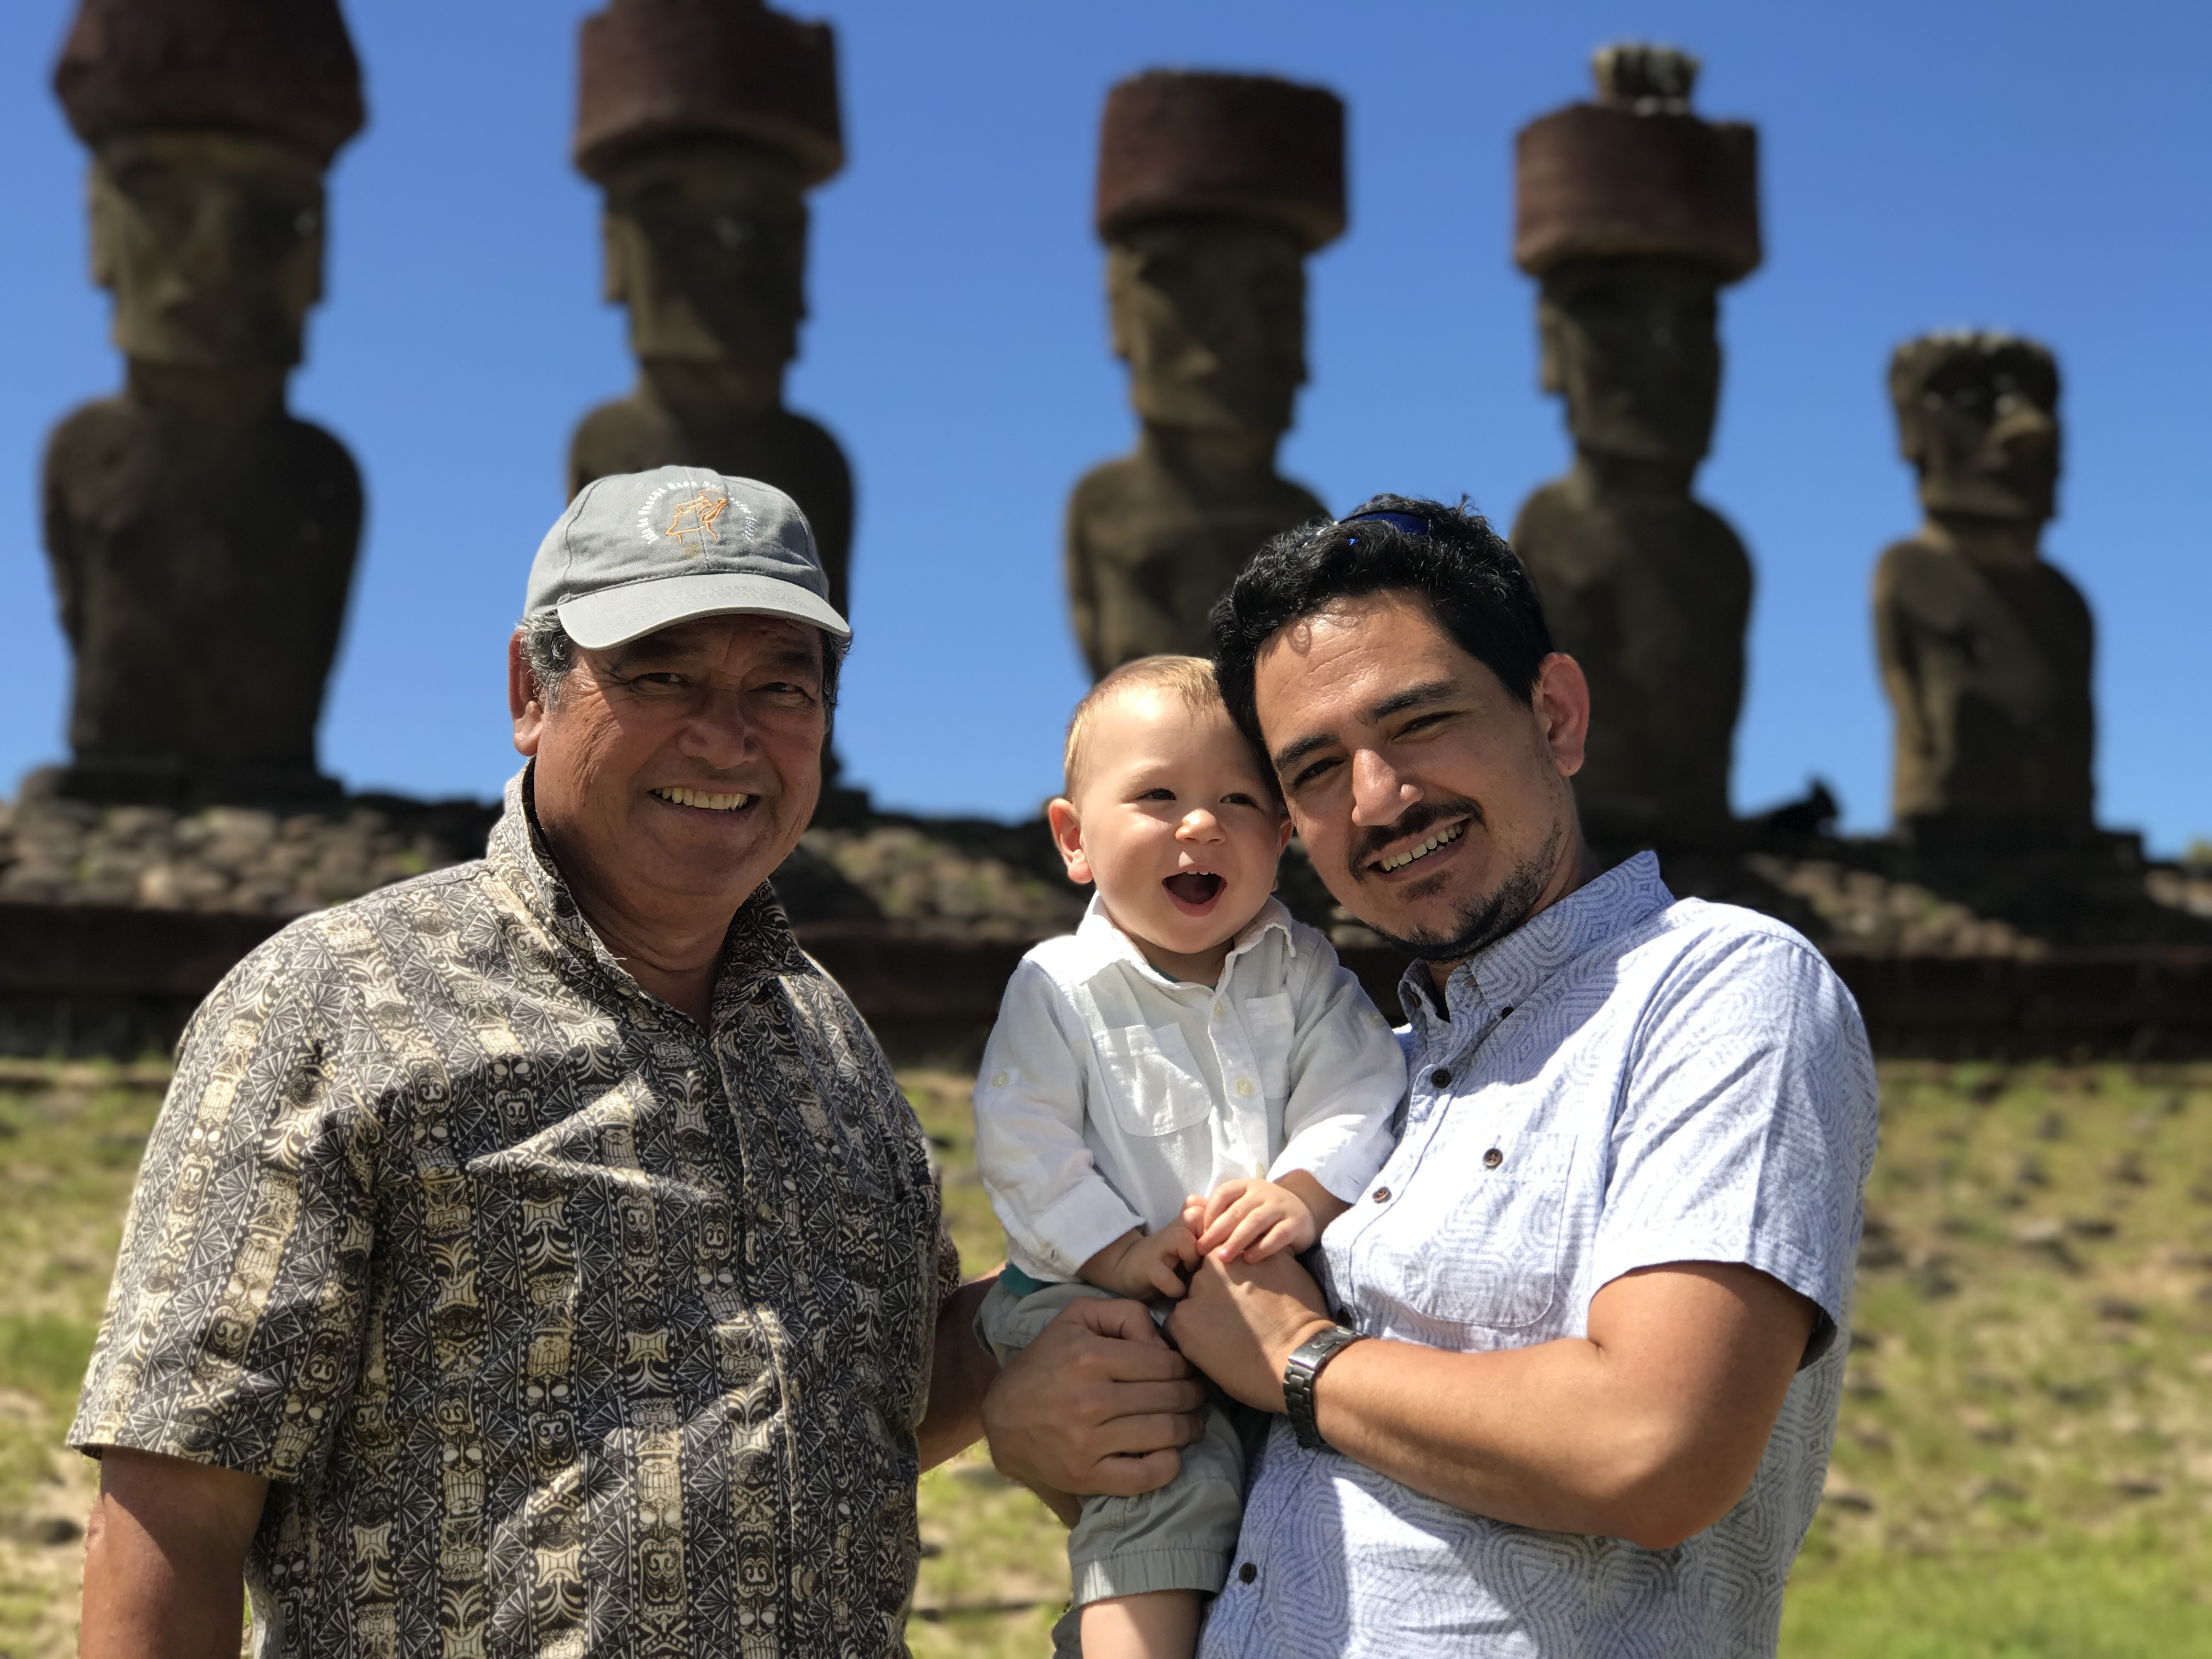 Sergio Mata'u Rapu stands with his father and his son in front of the Easter Island statues.